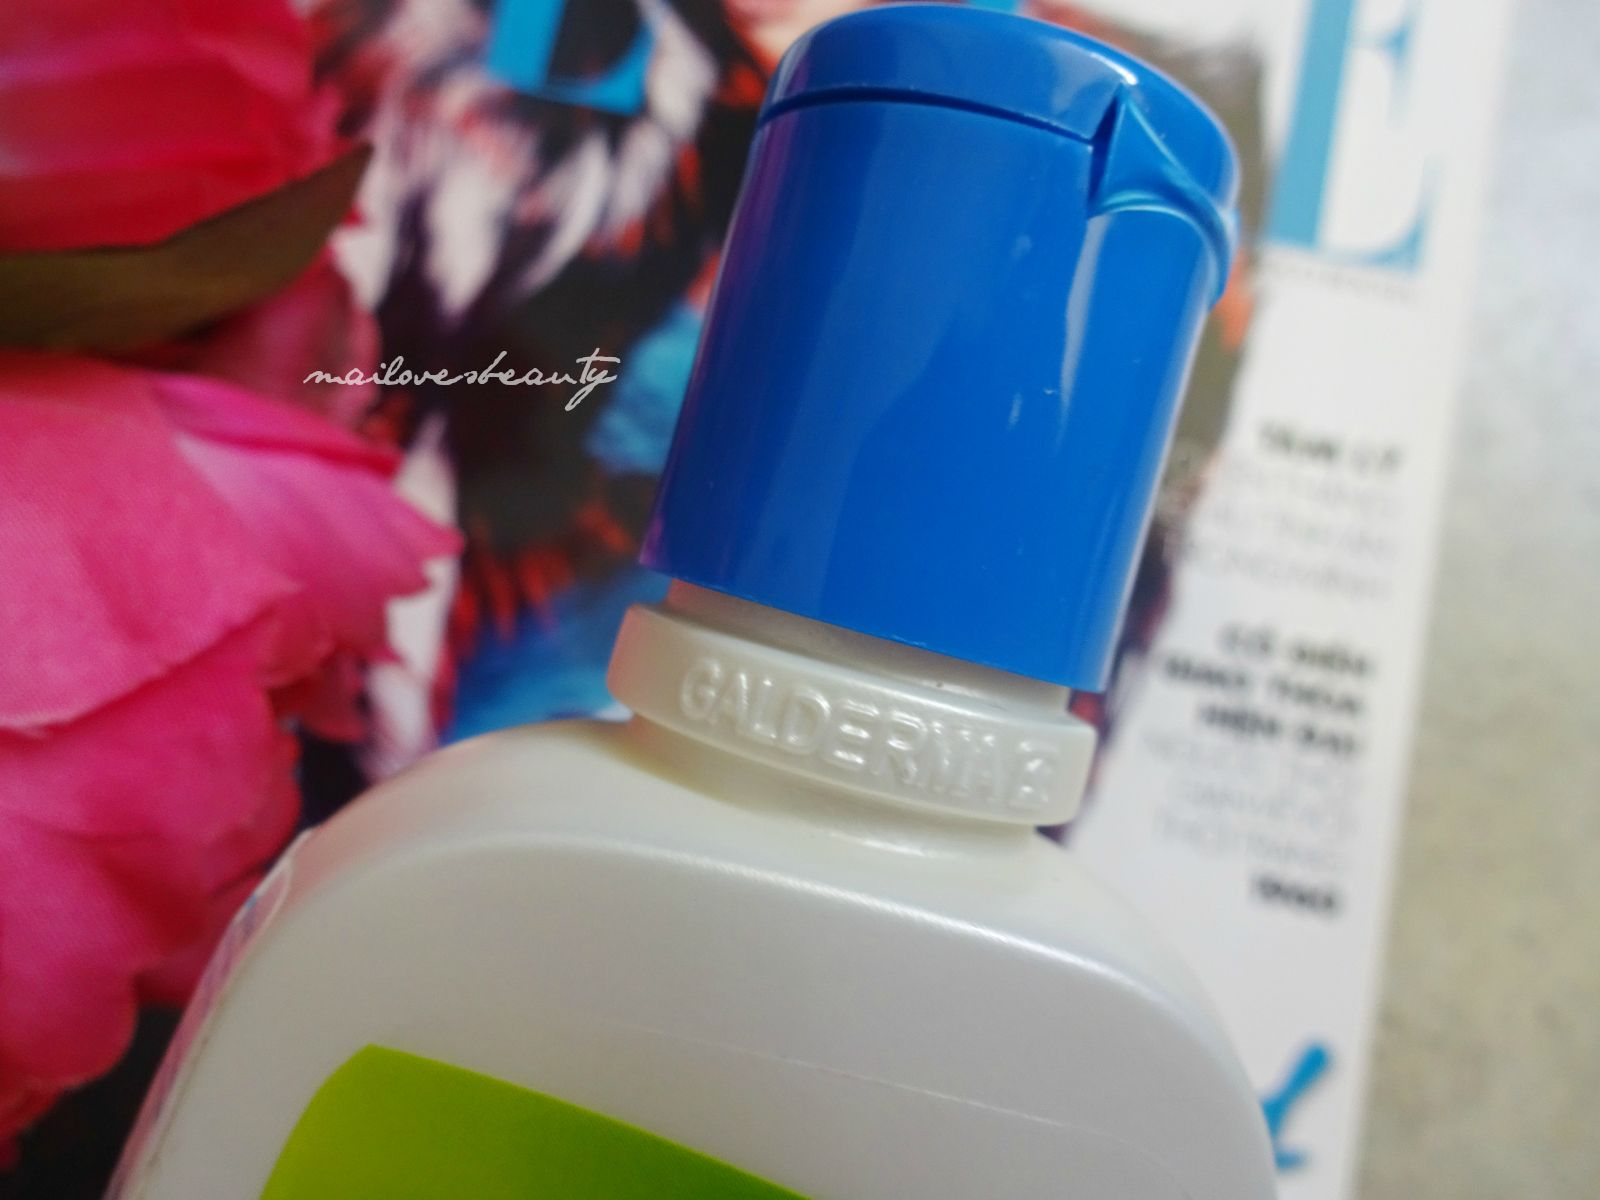 cetaphil gentle skin cleanser how to use